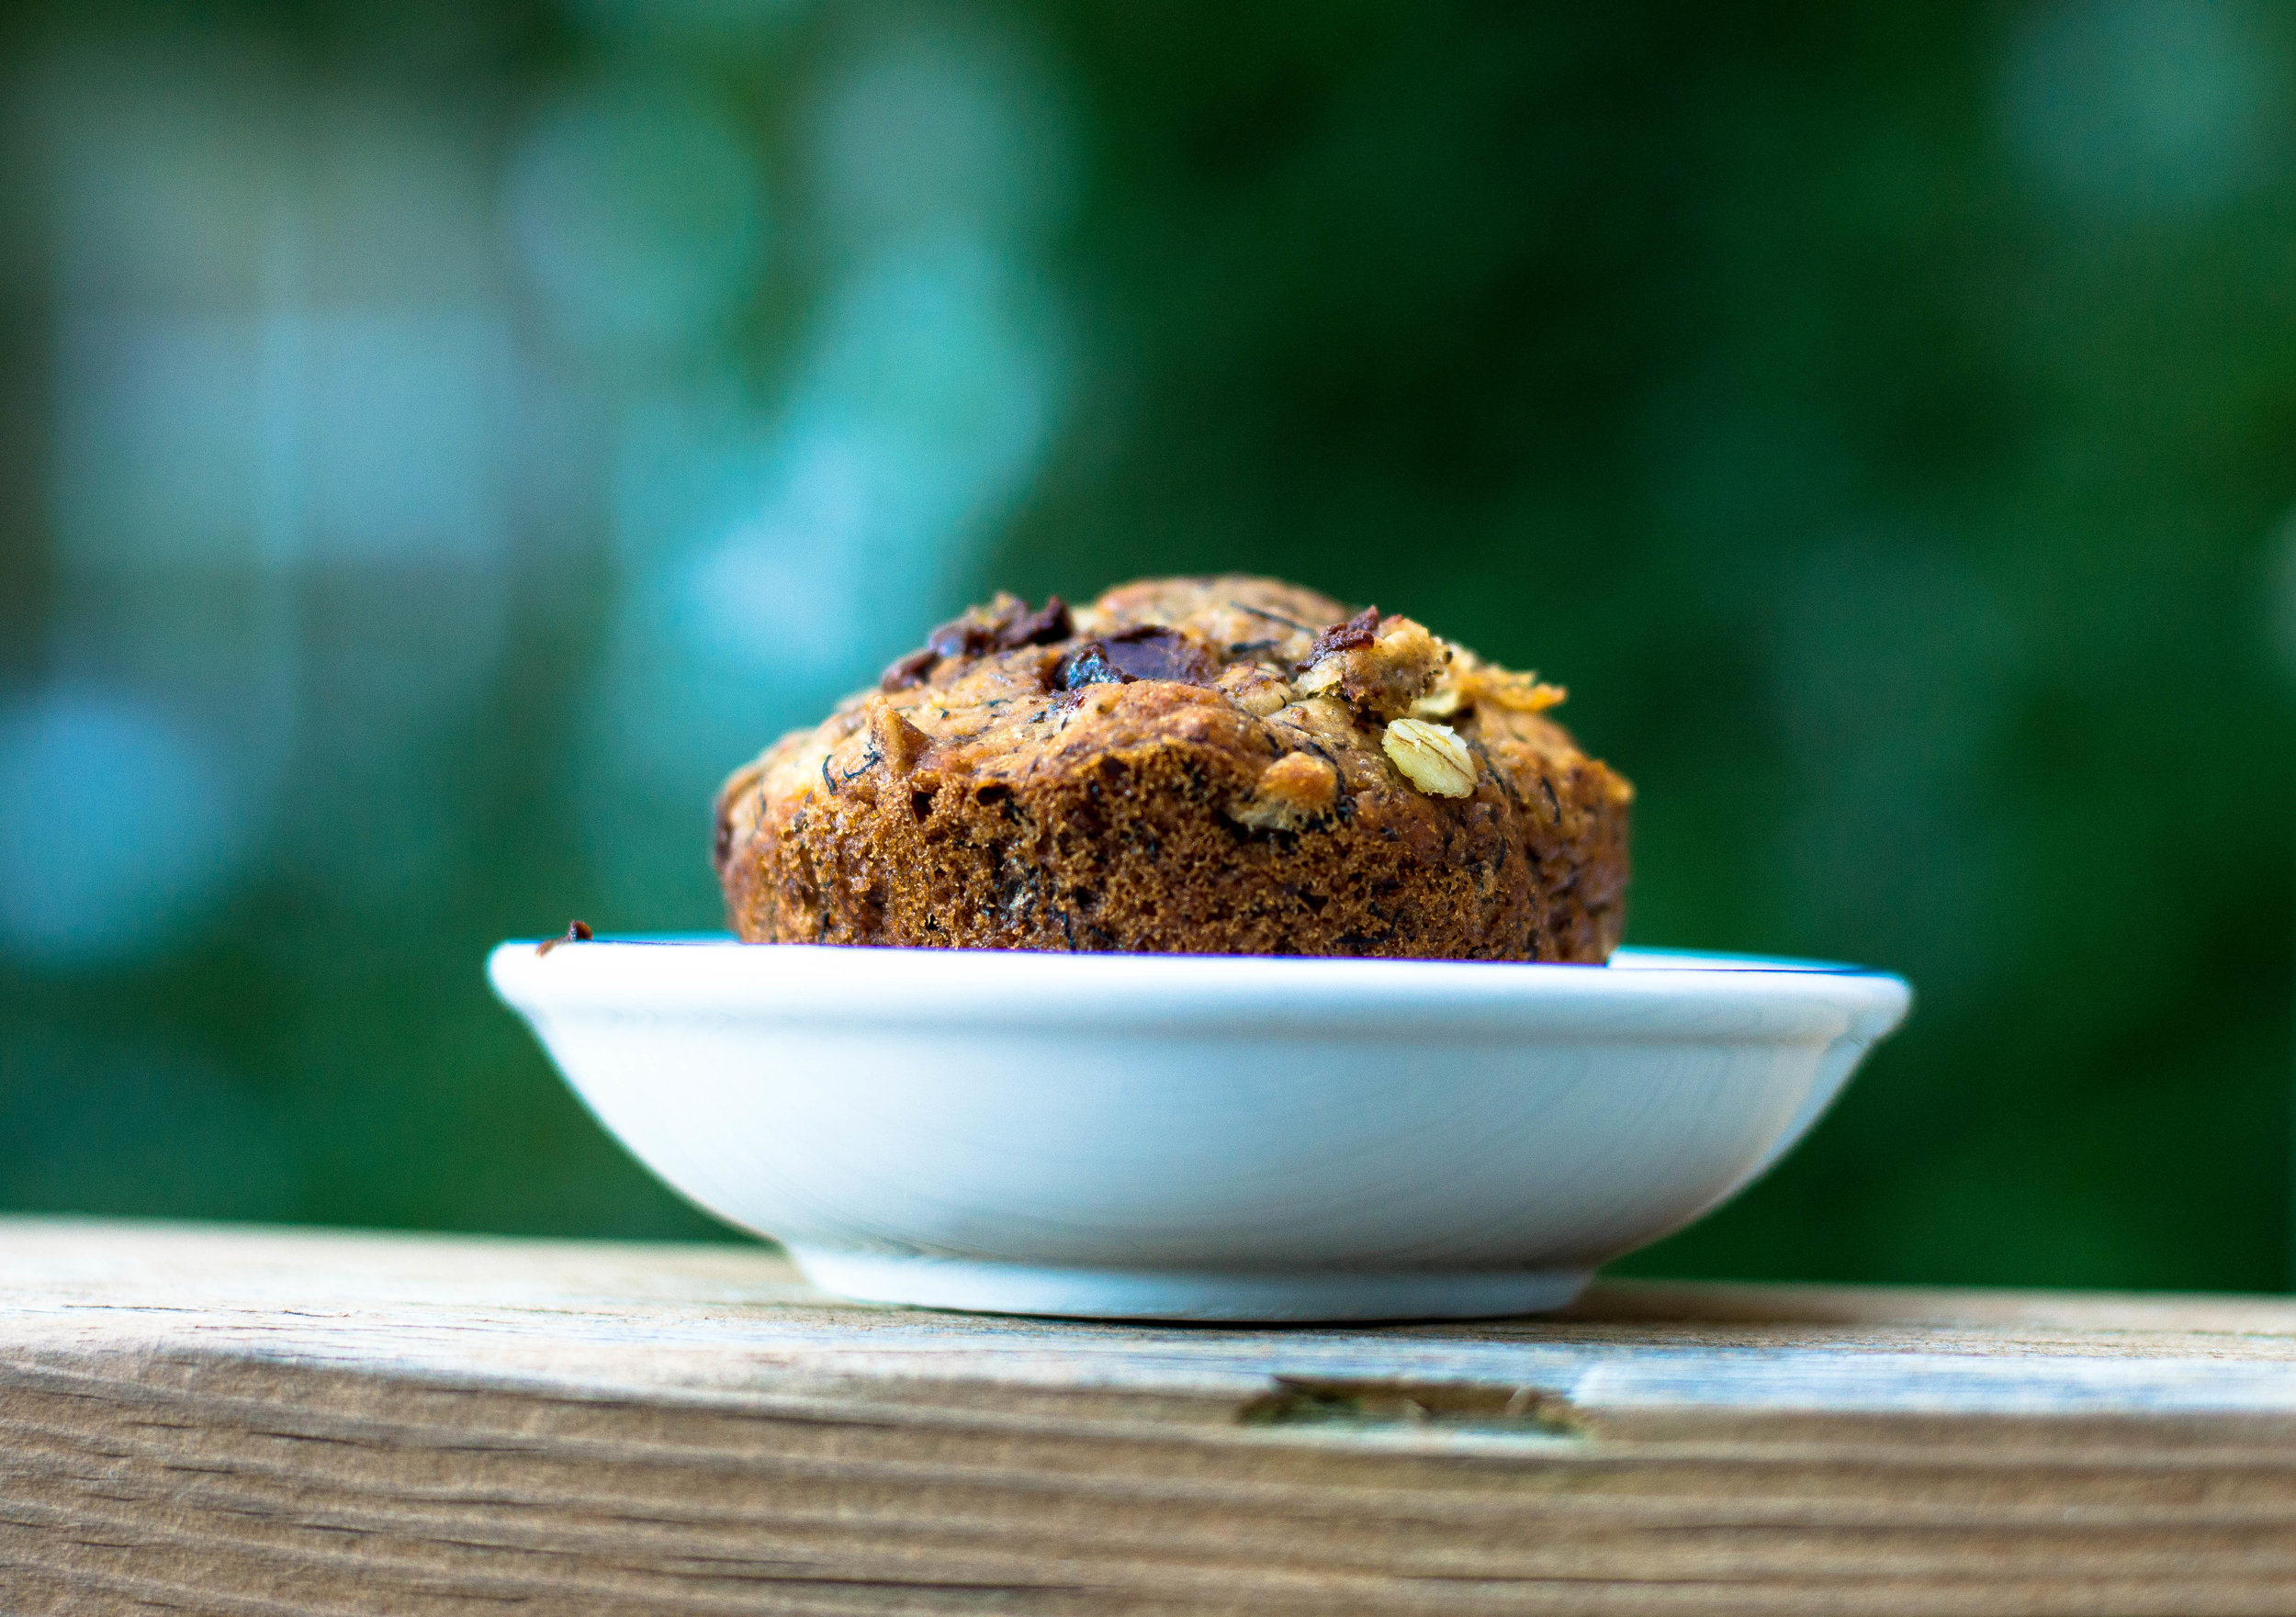 Banana-muffin-3-1-of-1.jpg